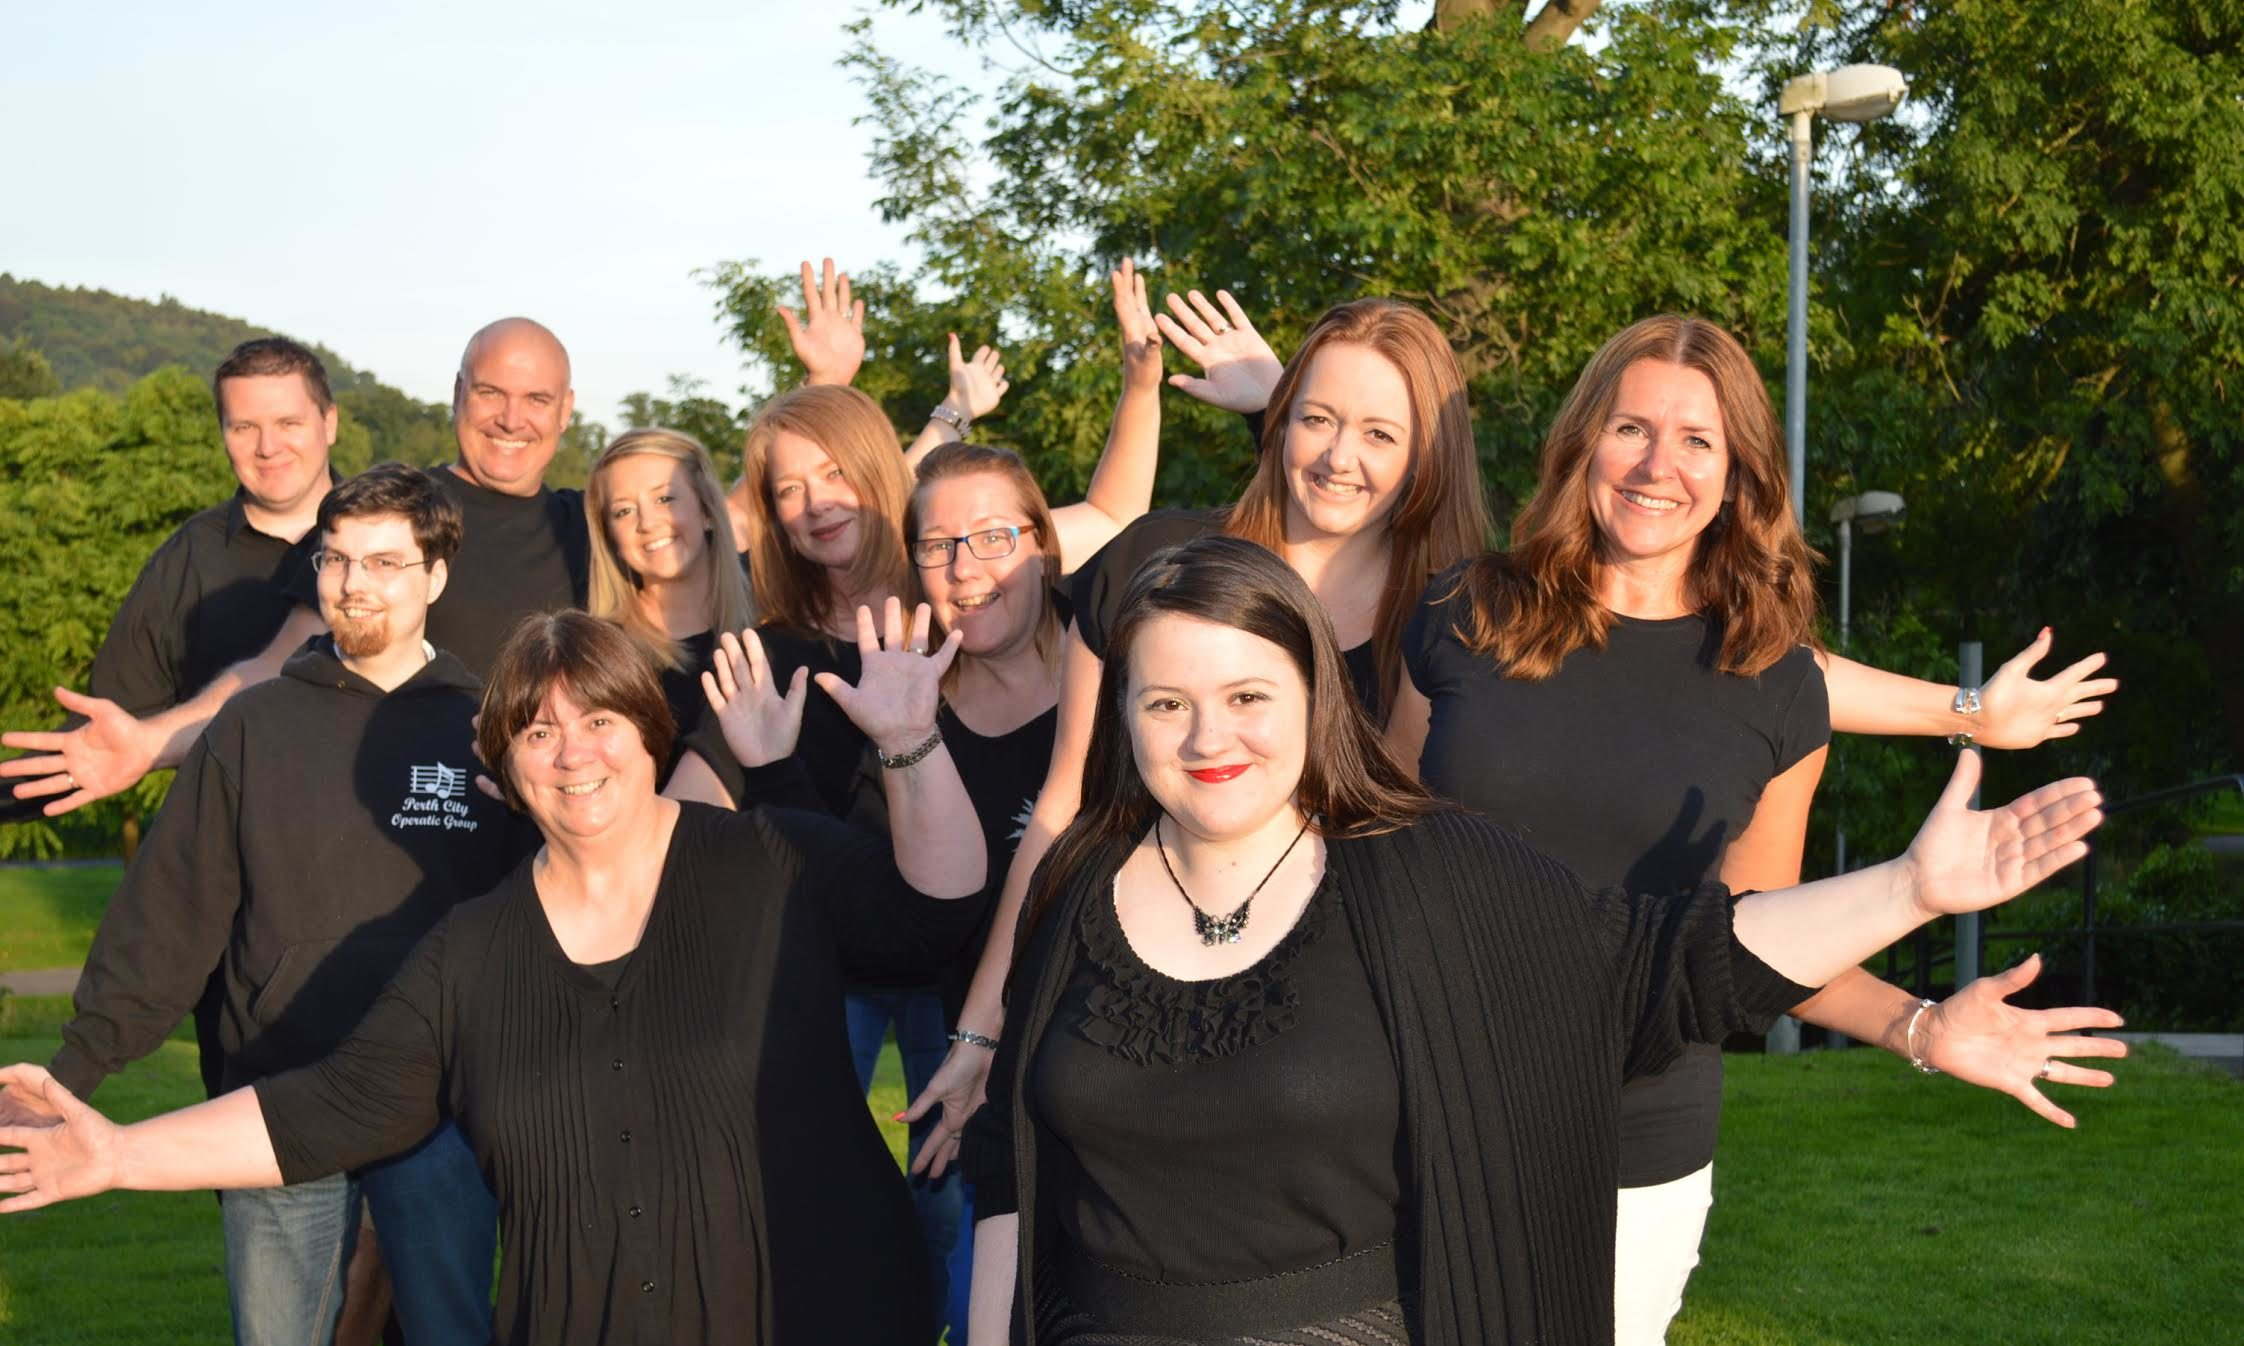 Perth City Operatic Group have been involved in dozens of productions since 1964.